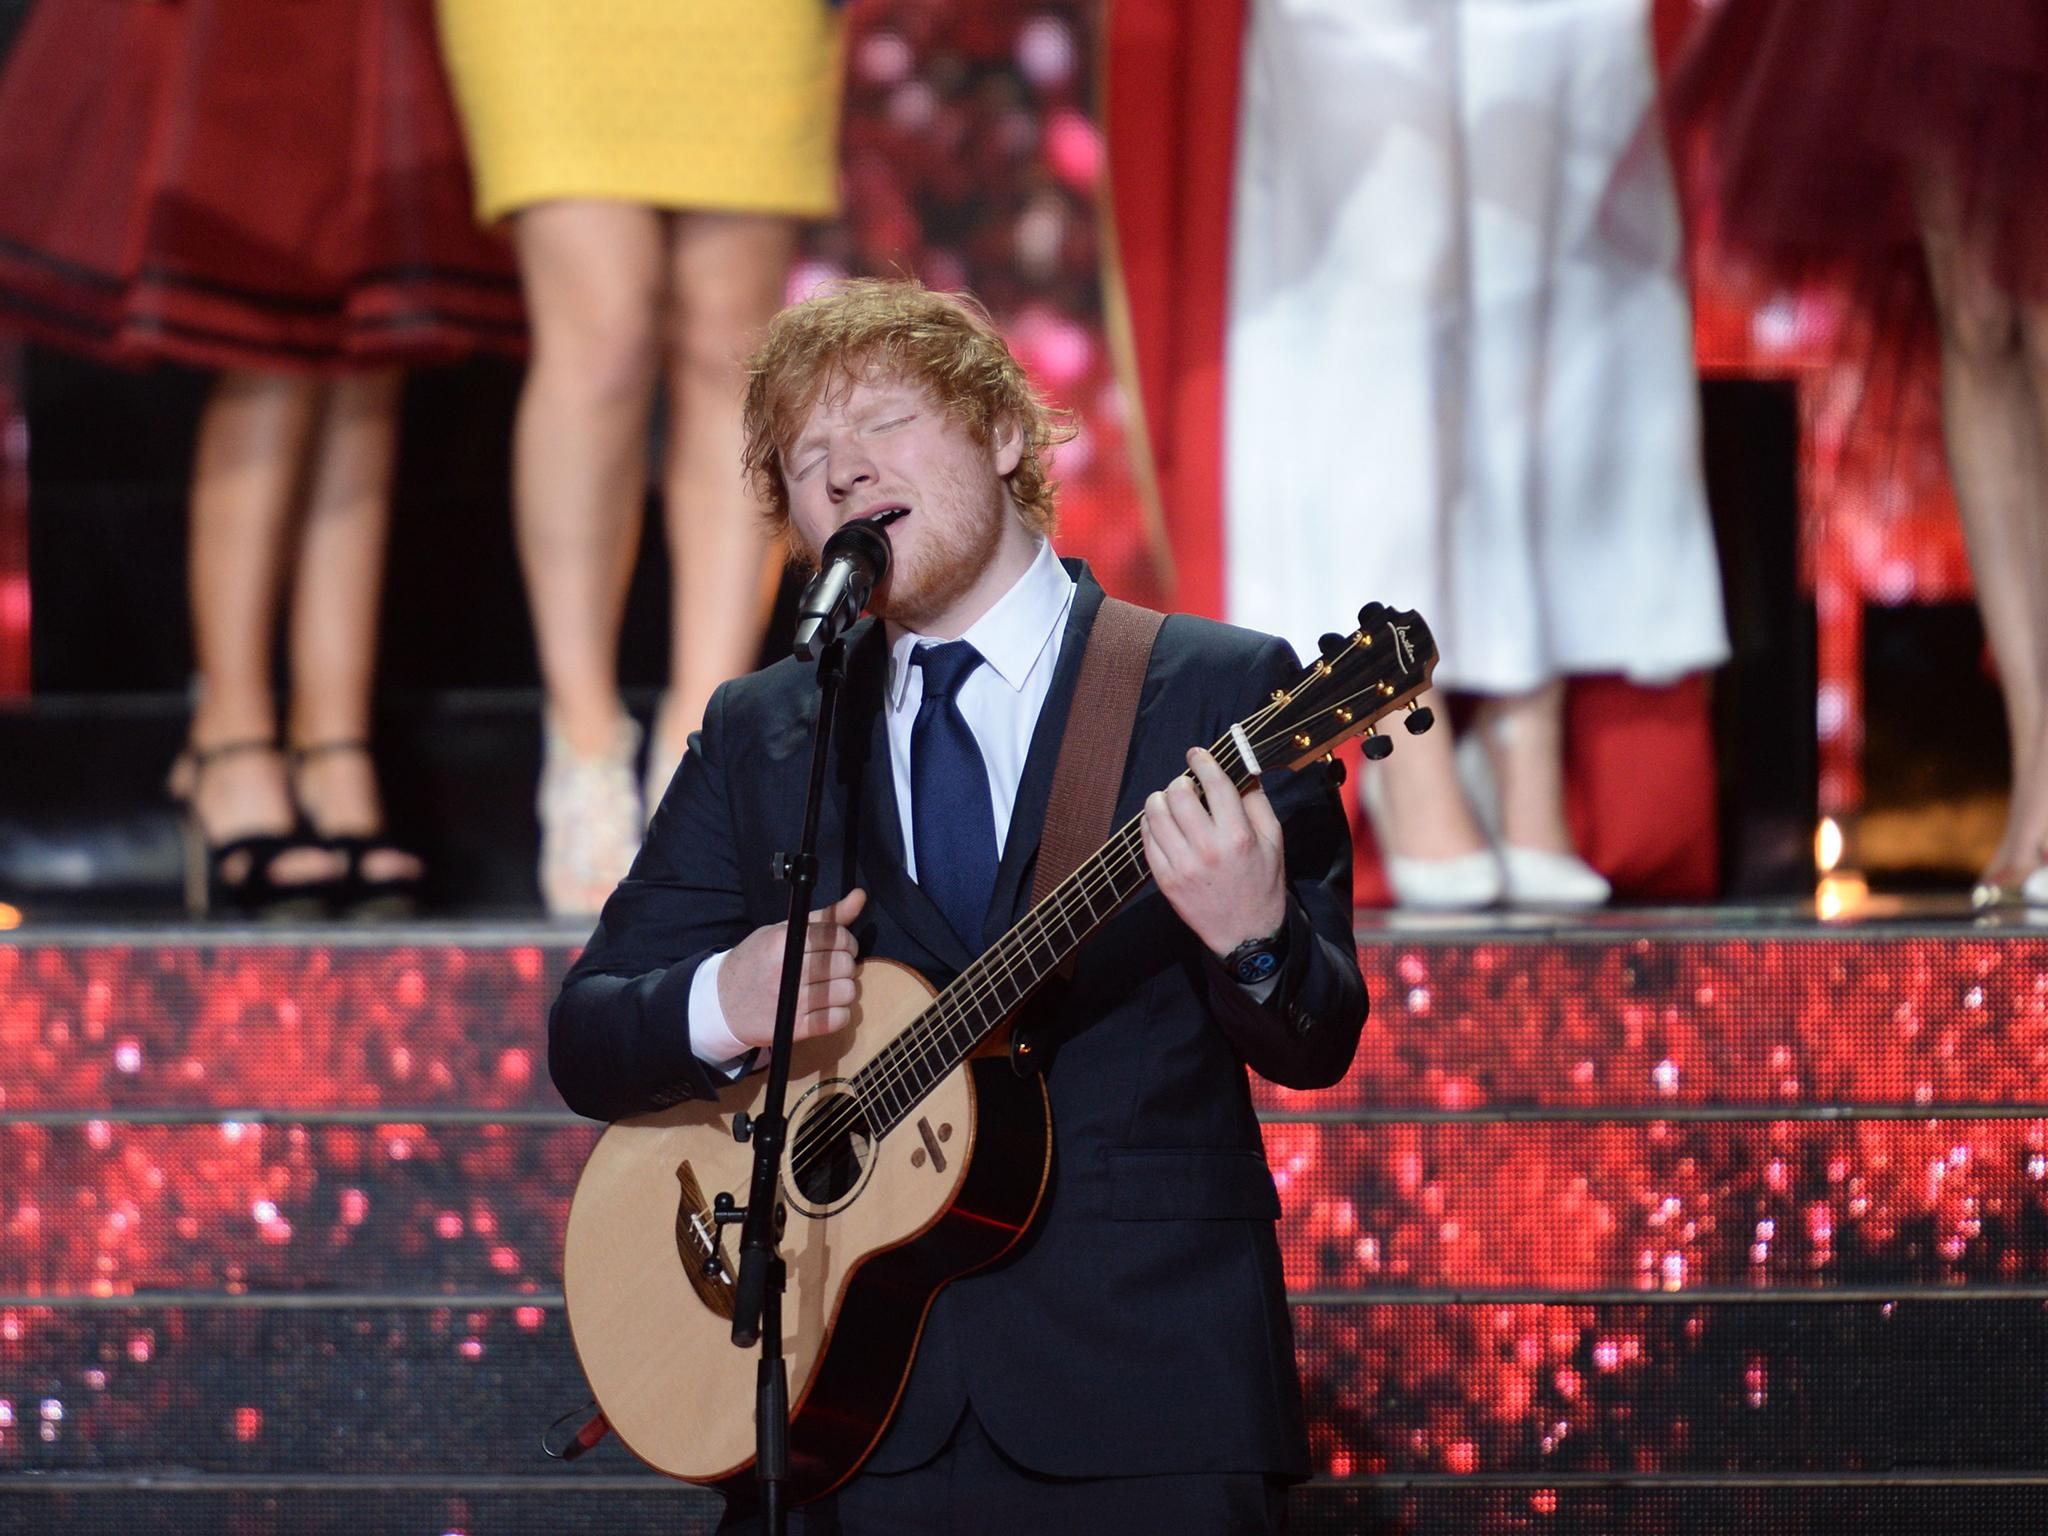 Ed Sheeran has written a James Bond song just in case he gets asked